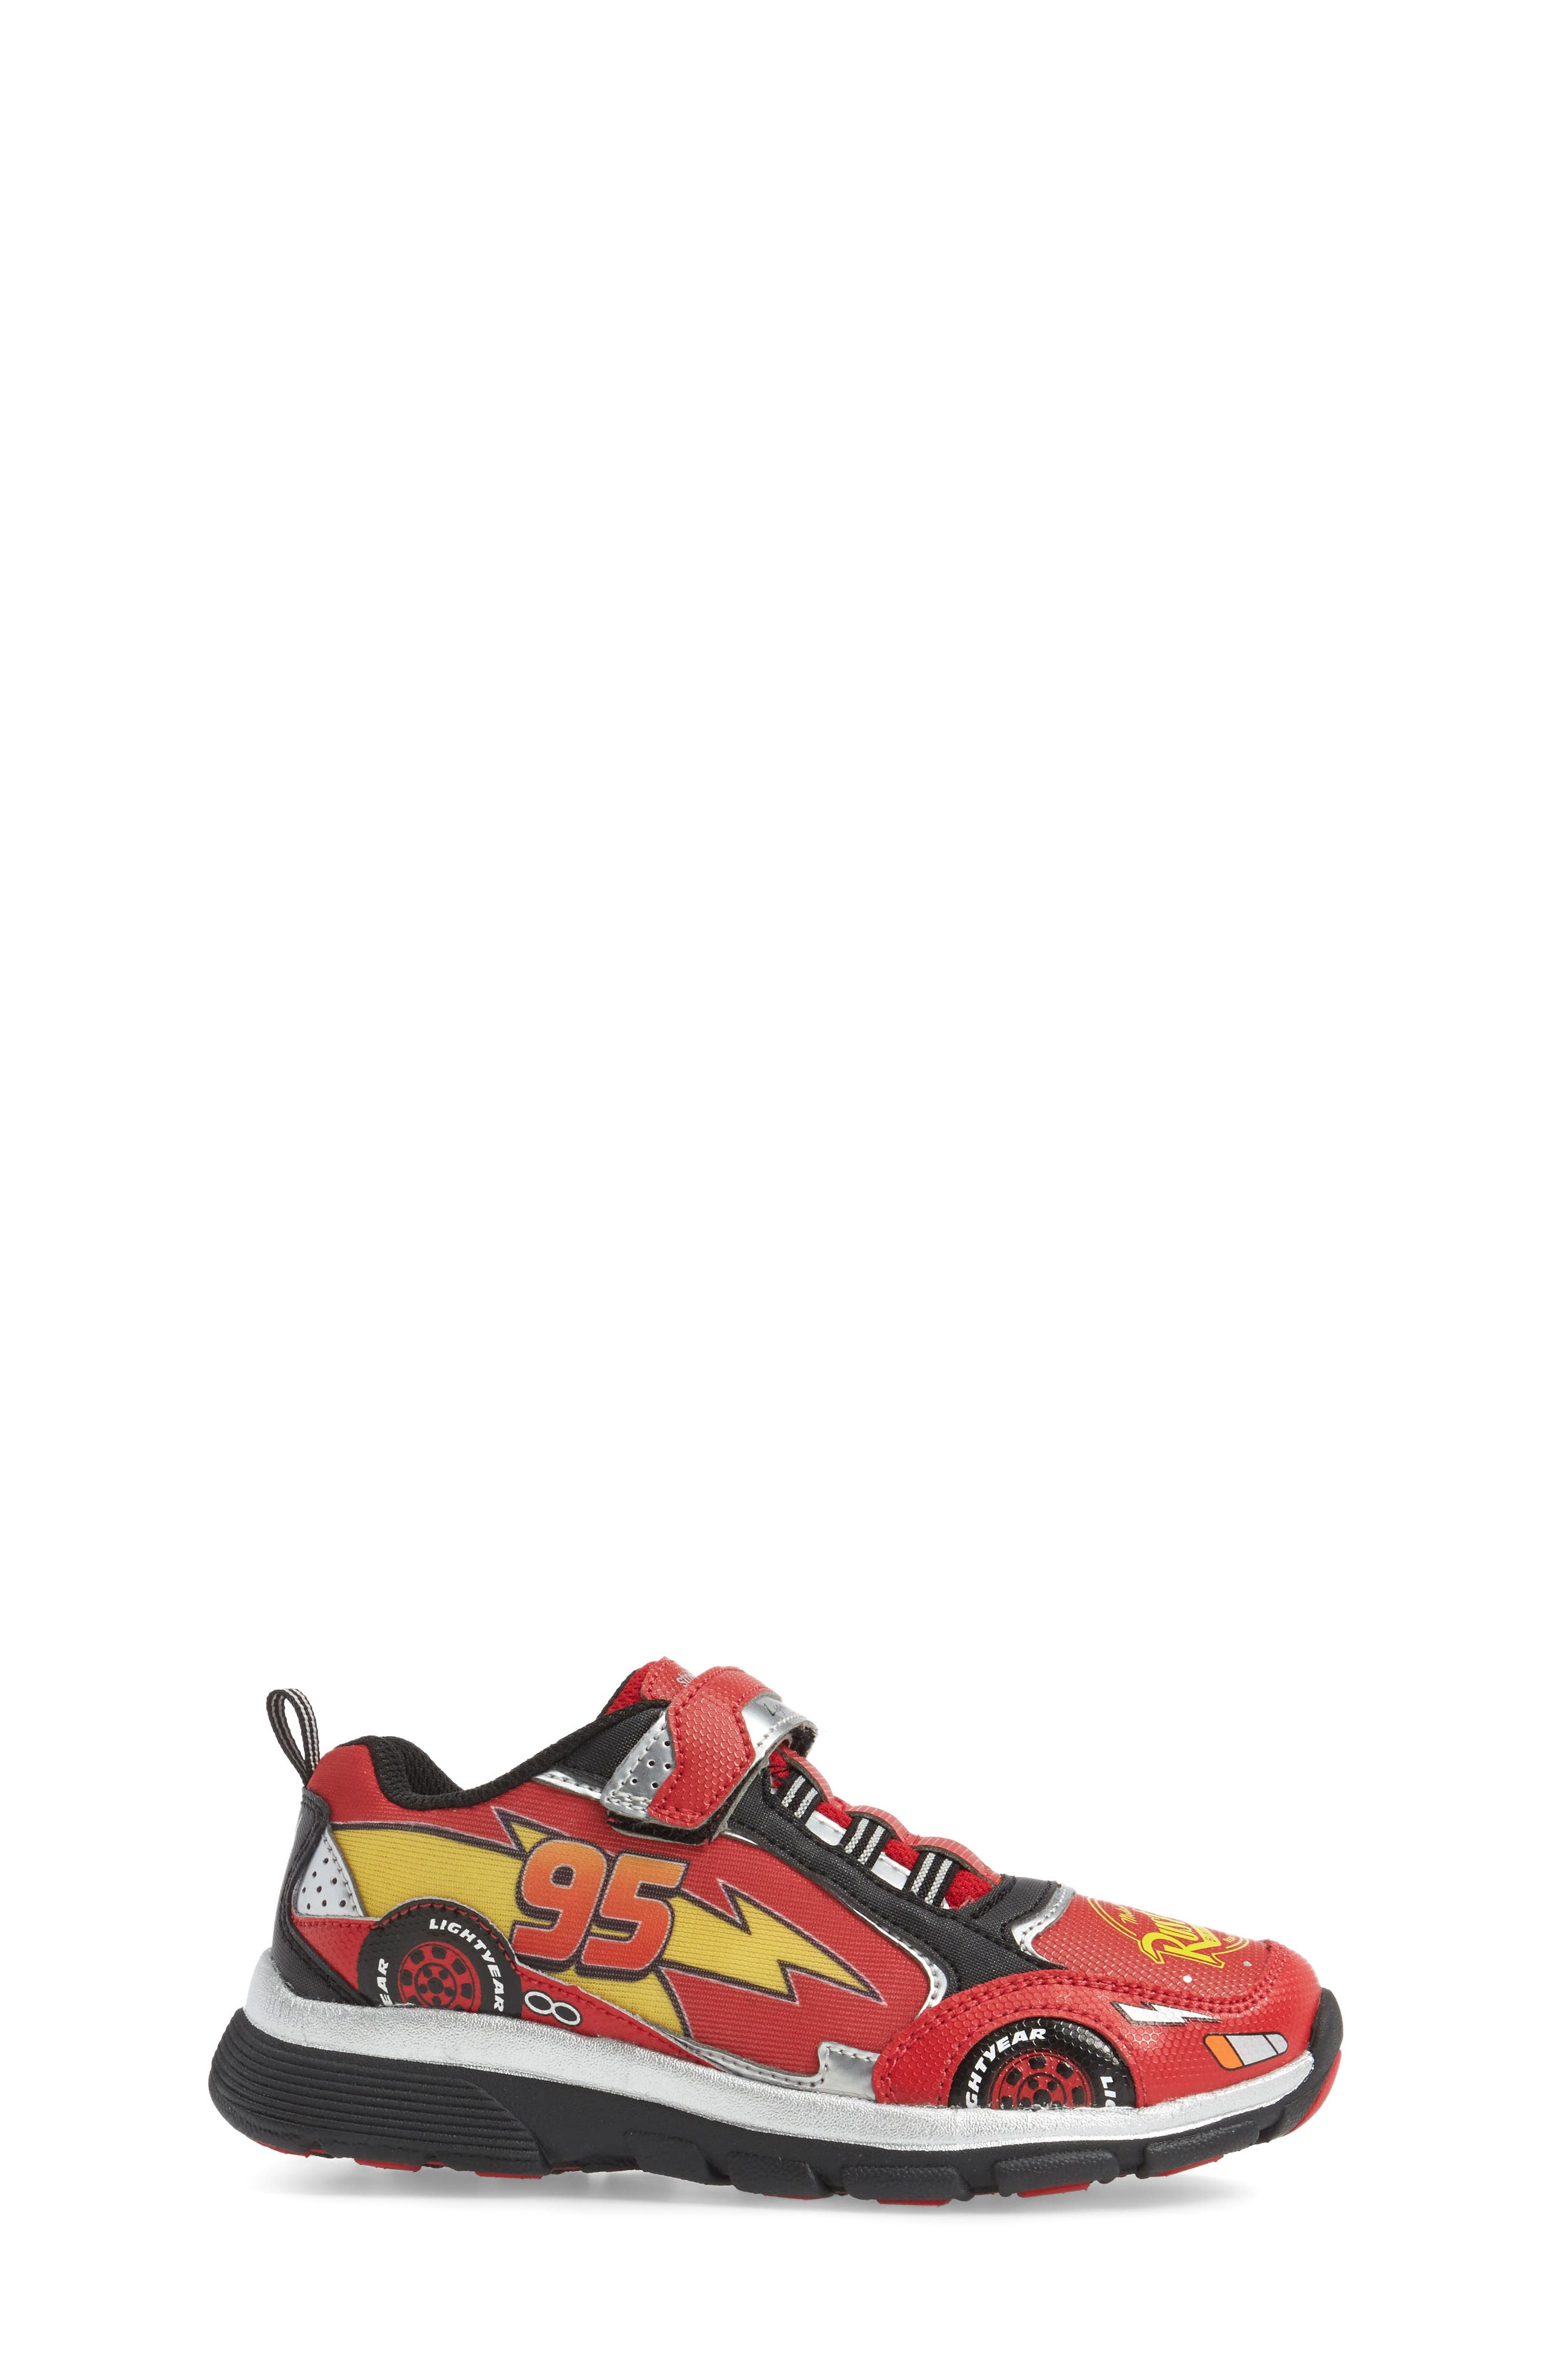 Disney Cars Sneaker,                             Alternate thumbnail 3, color,                             Red